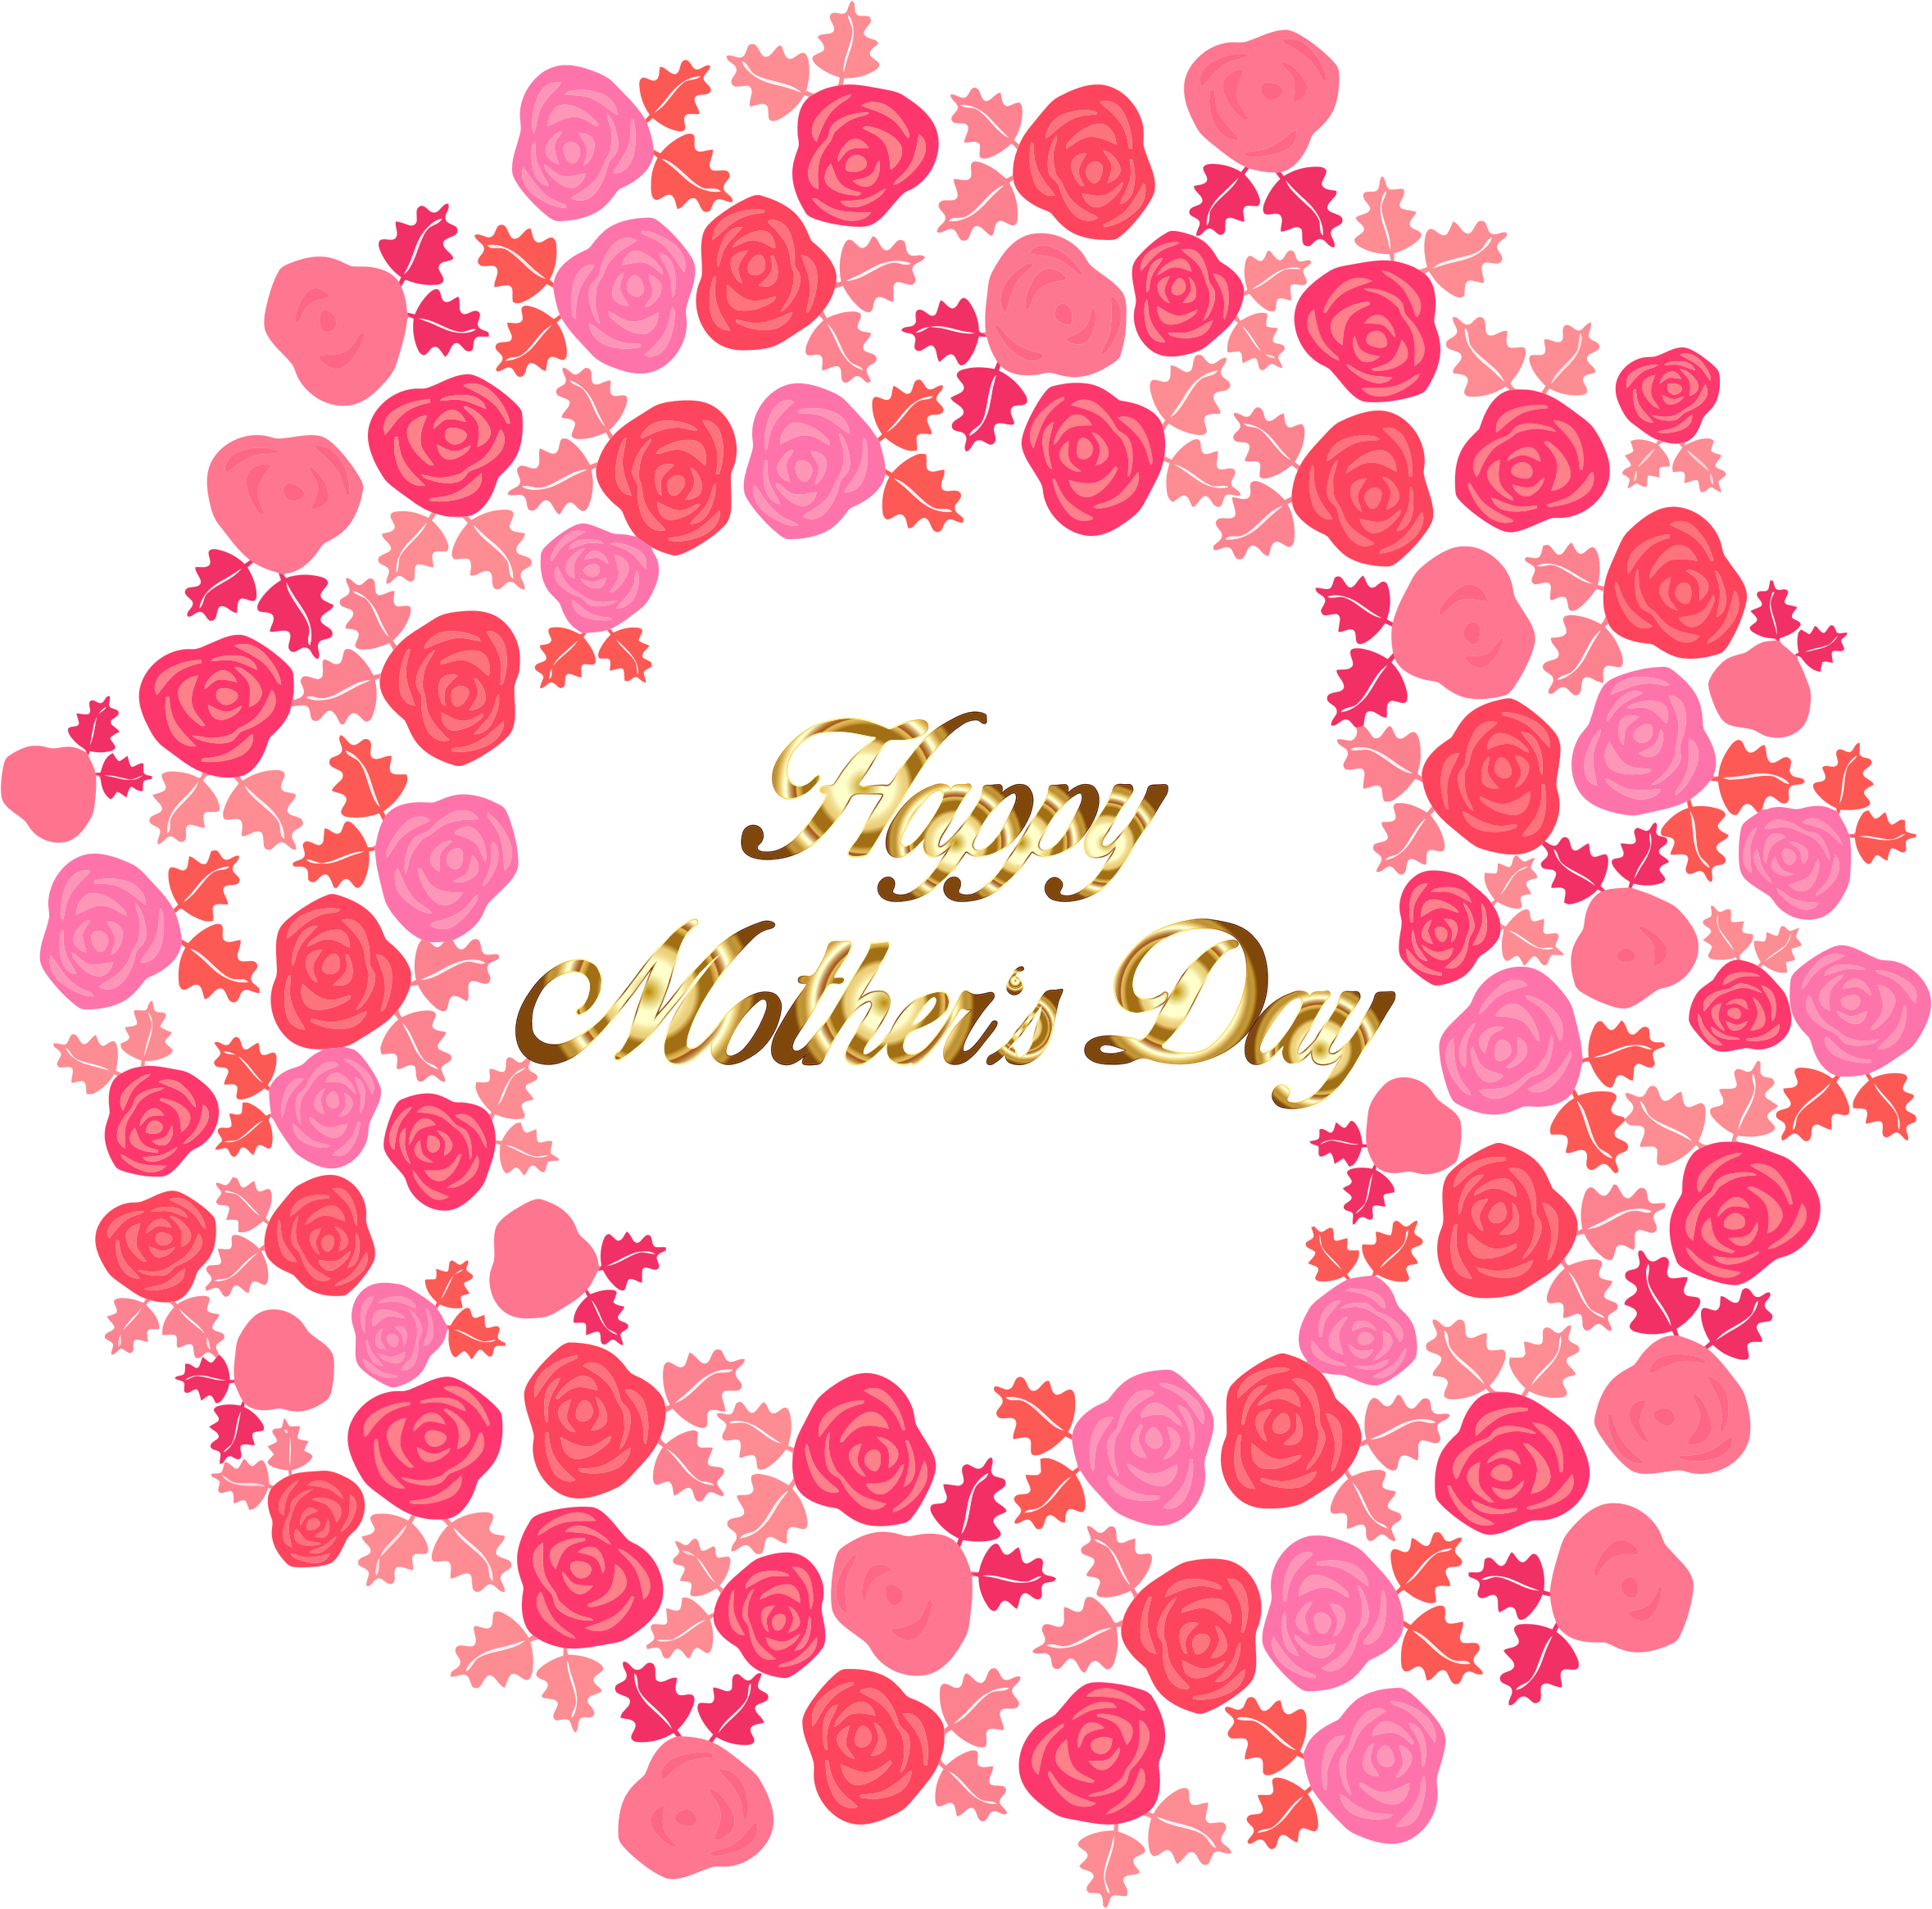 clipart download Happy mothers of flowers. Bouquet clipart mother's day bouquet.